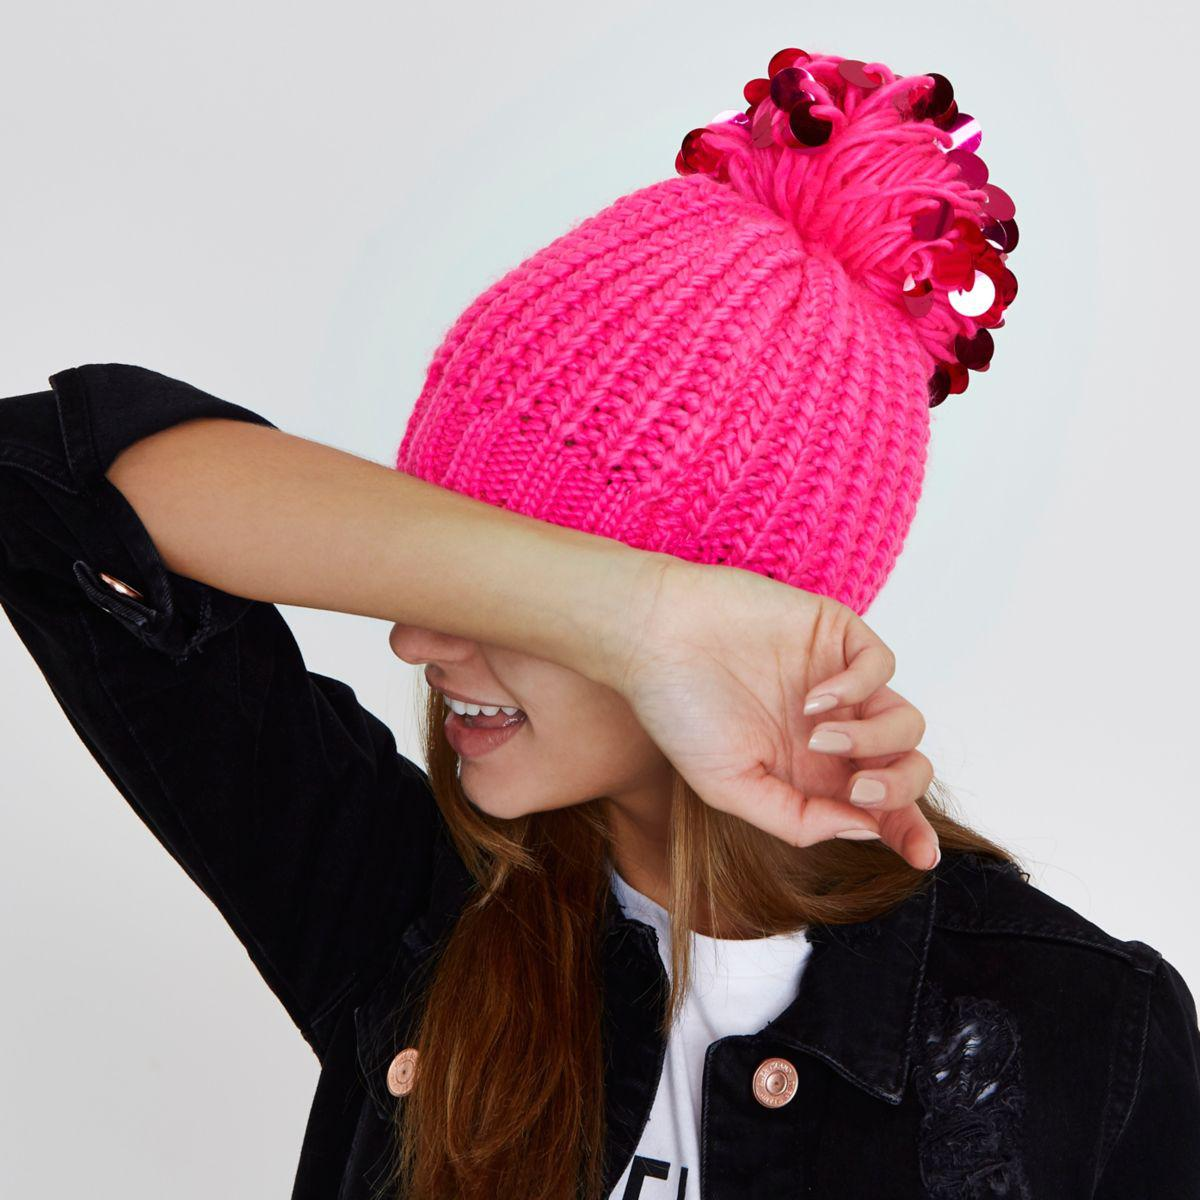 5e69459f88f Lyst - River Island Bright Pink Sequin Pom Pom Beanie Hat in Pink